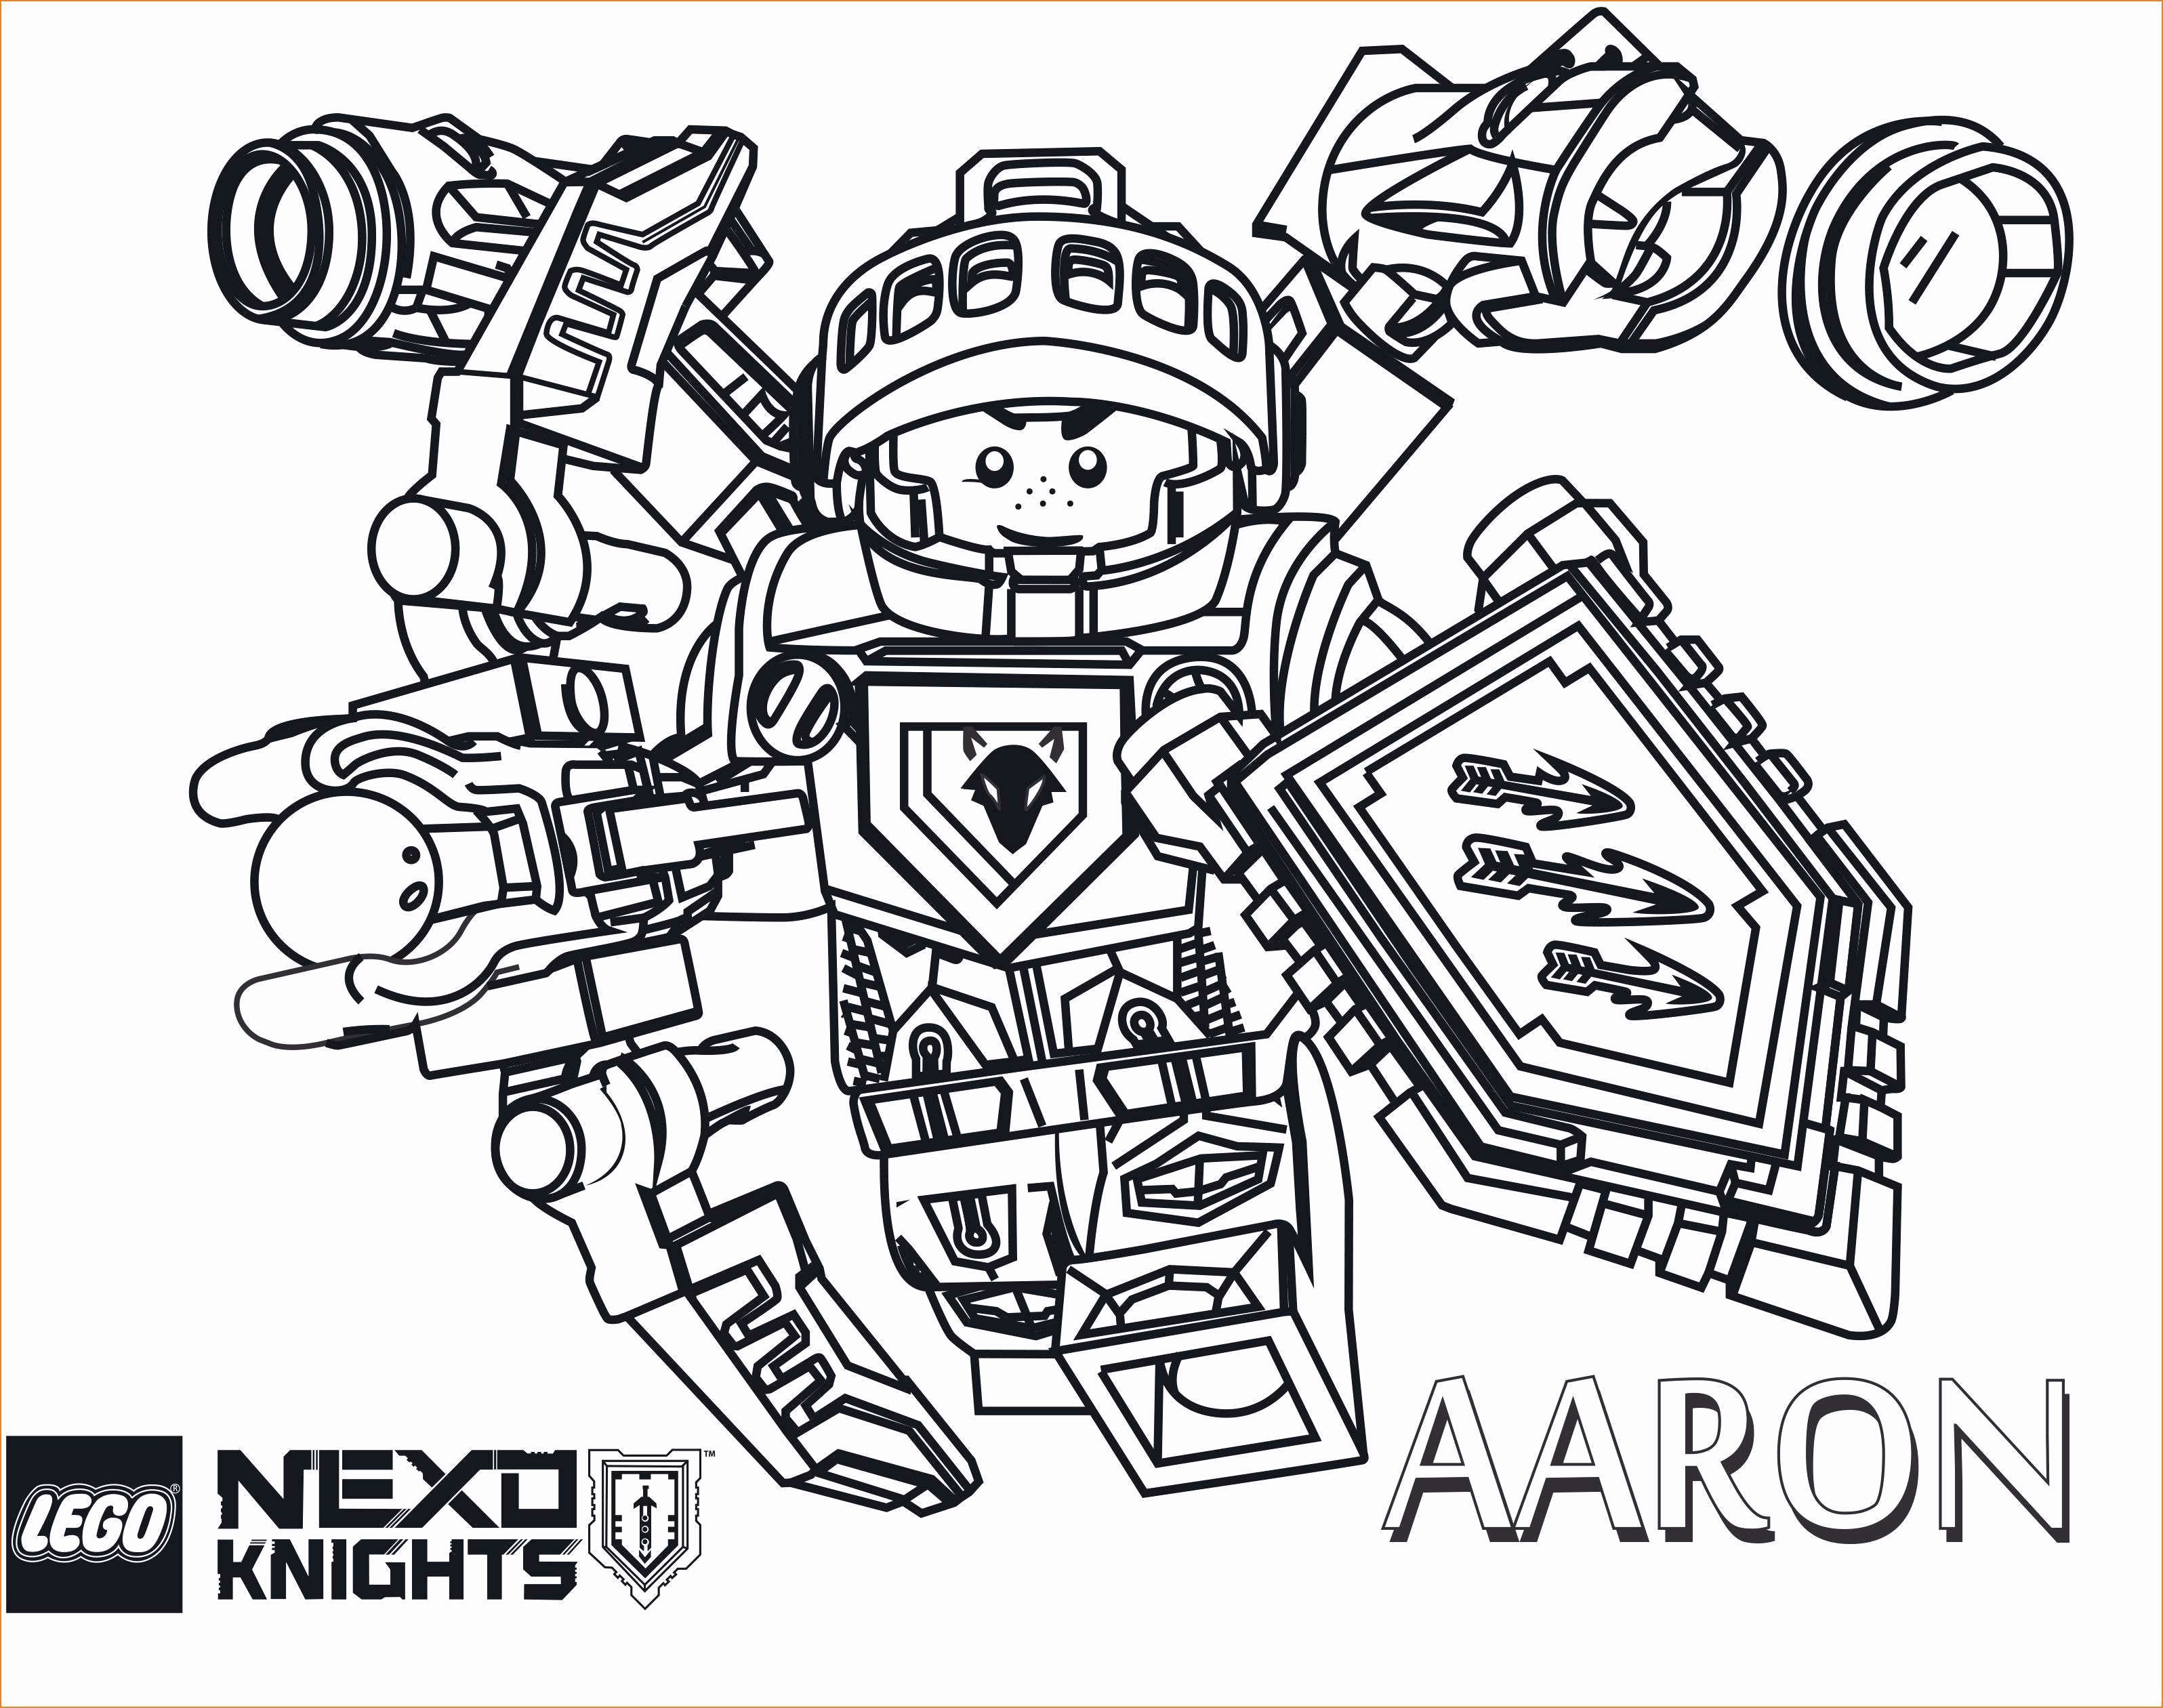 Lego Ausmalbilder Kostenlos Frisch 38 Coloring Pages for Boys Lego Ninjago Printable